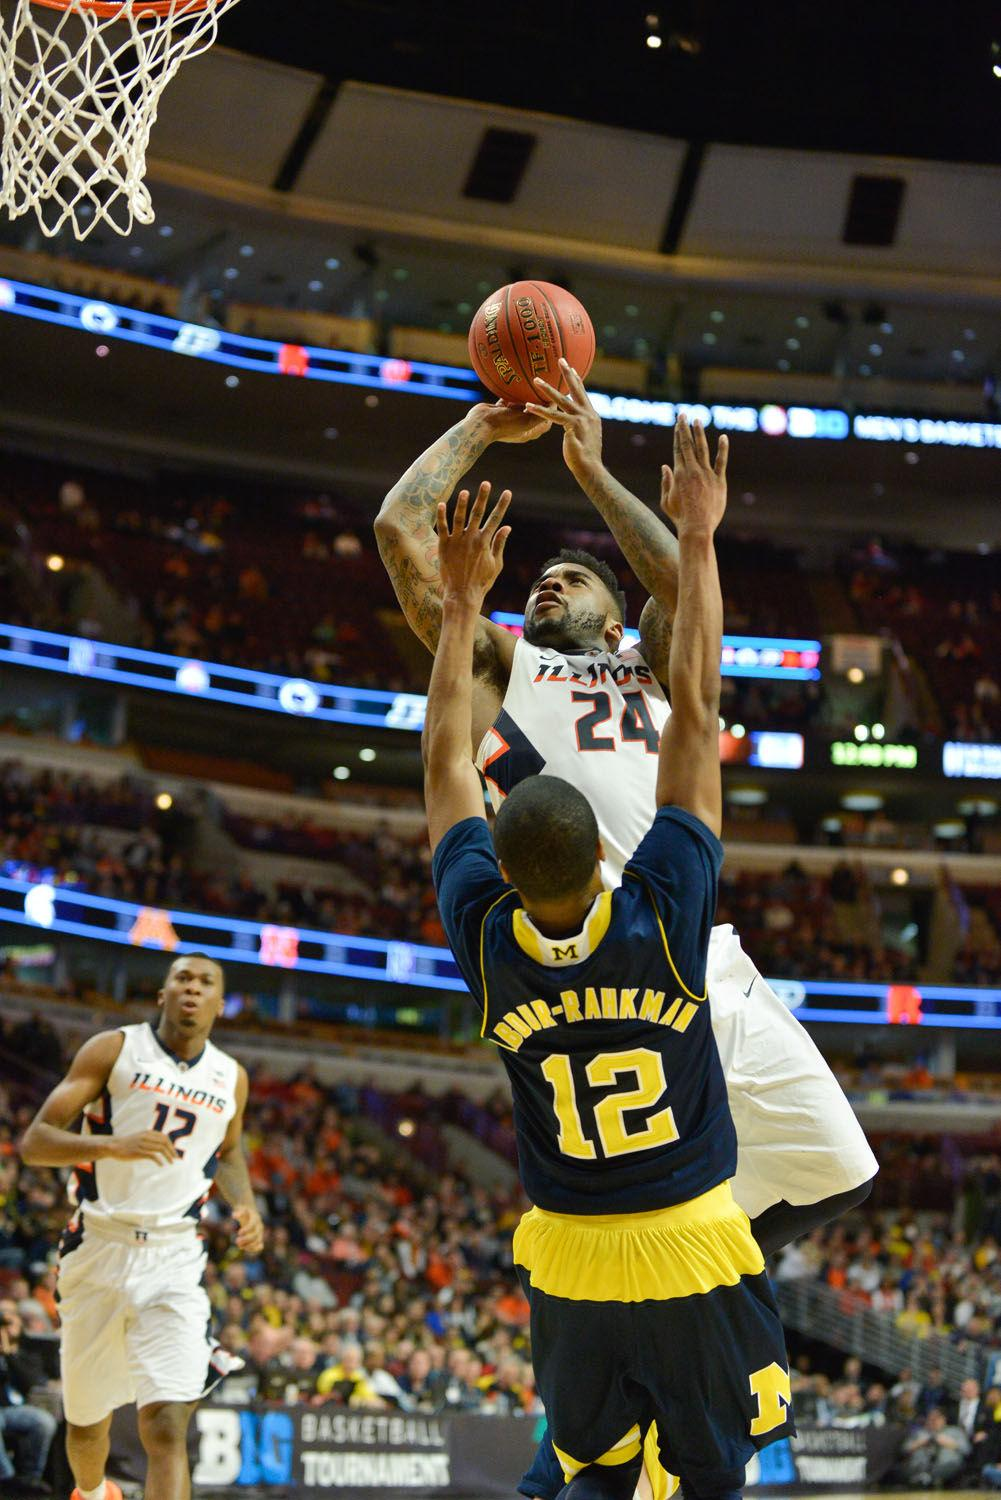 Illinois' Rayvonte Rice shoots the ball during the game against Michigan at United Center in Chicago, Illinois, during the Big Ten Tournament on Thursday. The Illini lost 73-55, sending them to the National Invitational Tournament for the second year in a row.